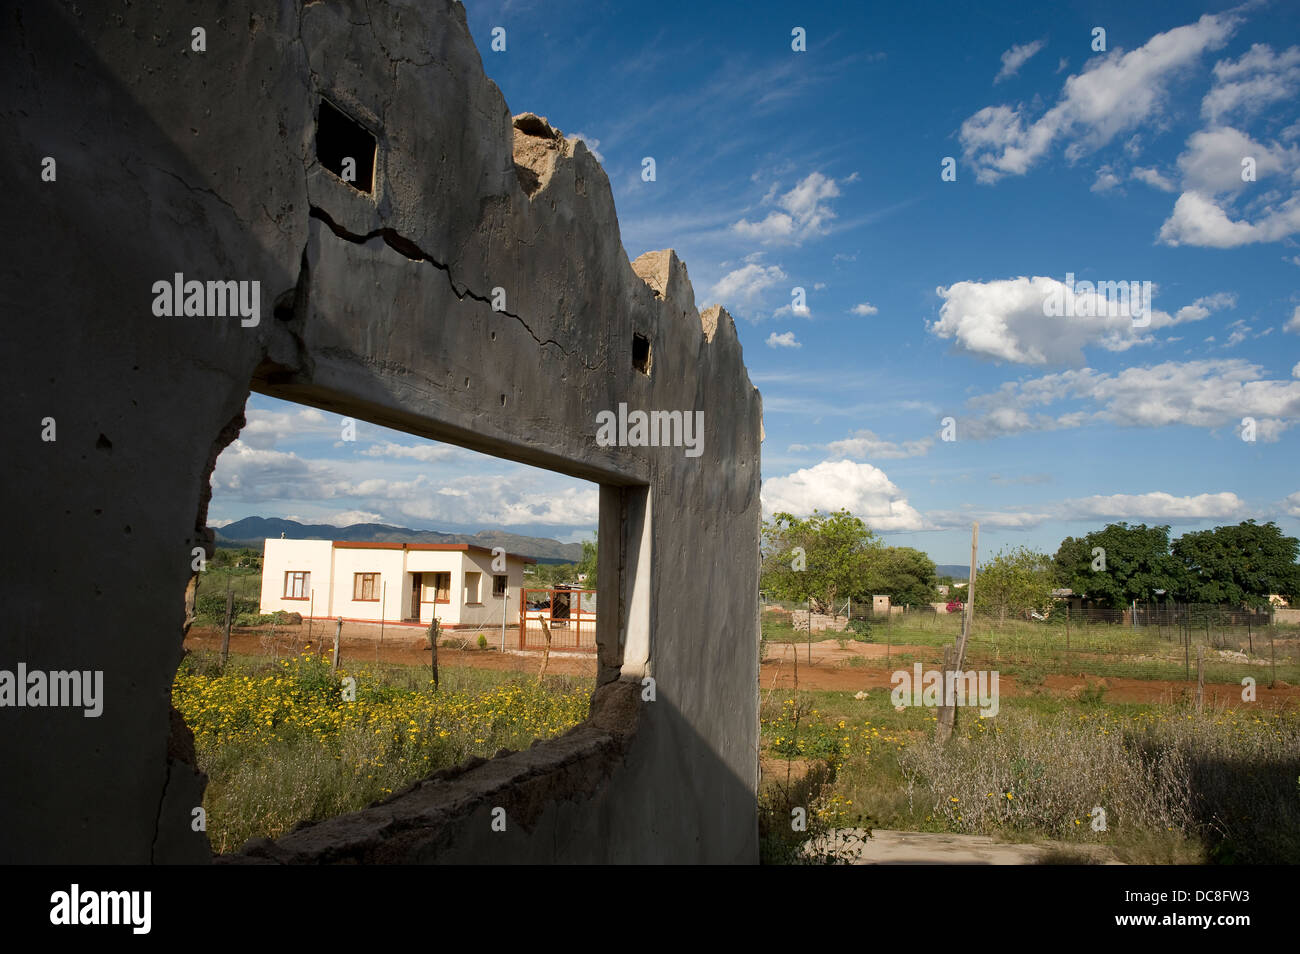 South Africa 2010 Near Makopane 250 km north Johannesburg Some residents Ga-Phila have moved or abandoned their - Stock Image